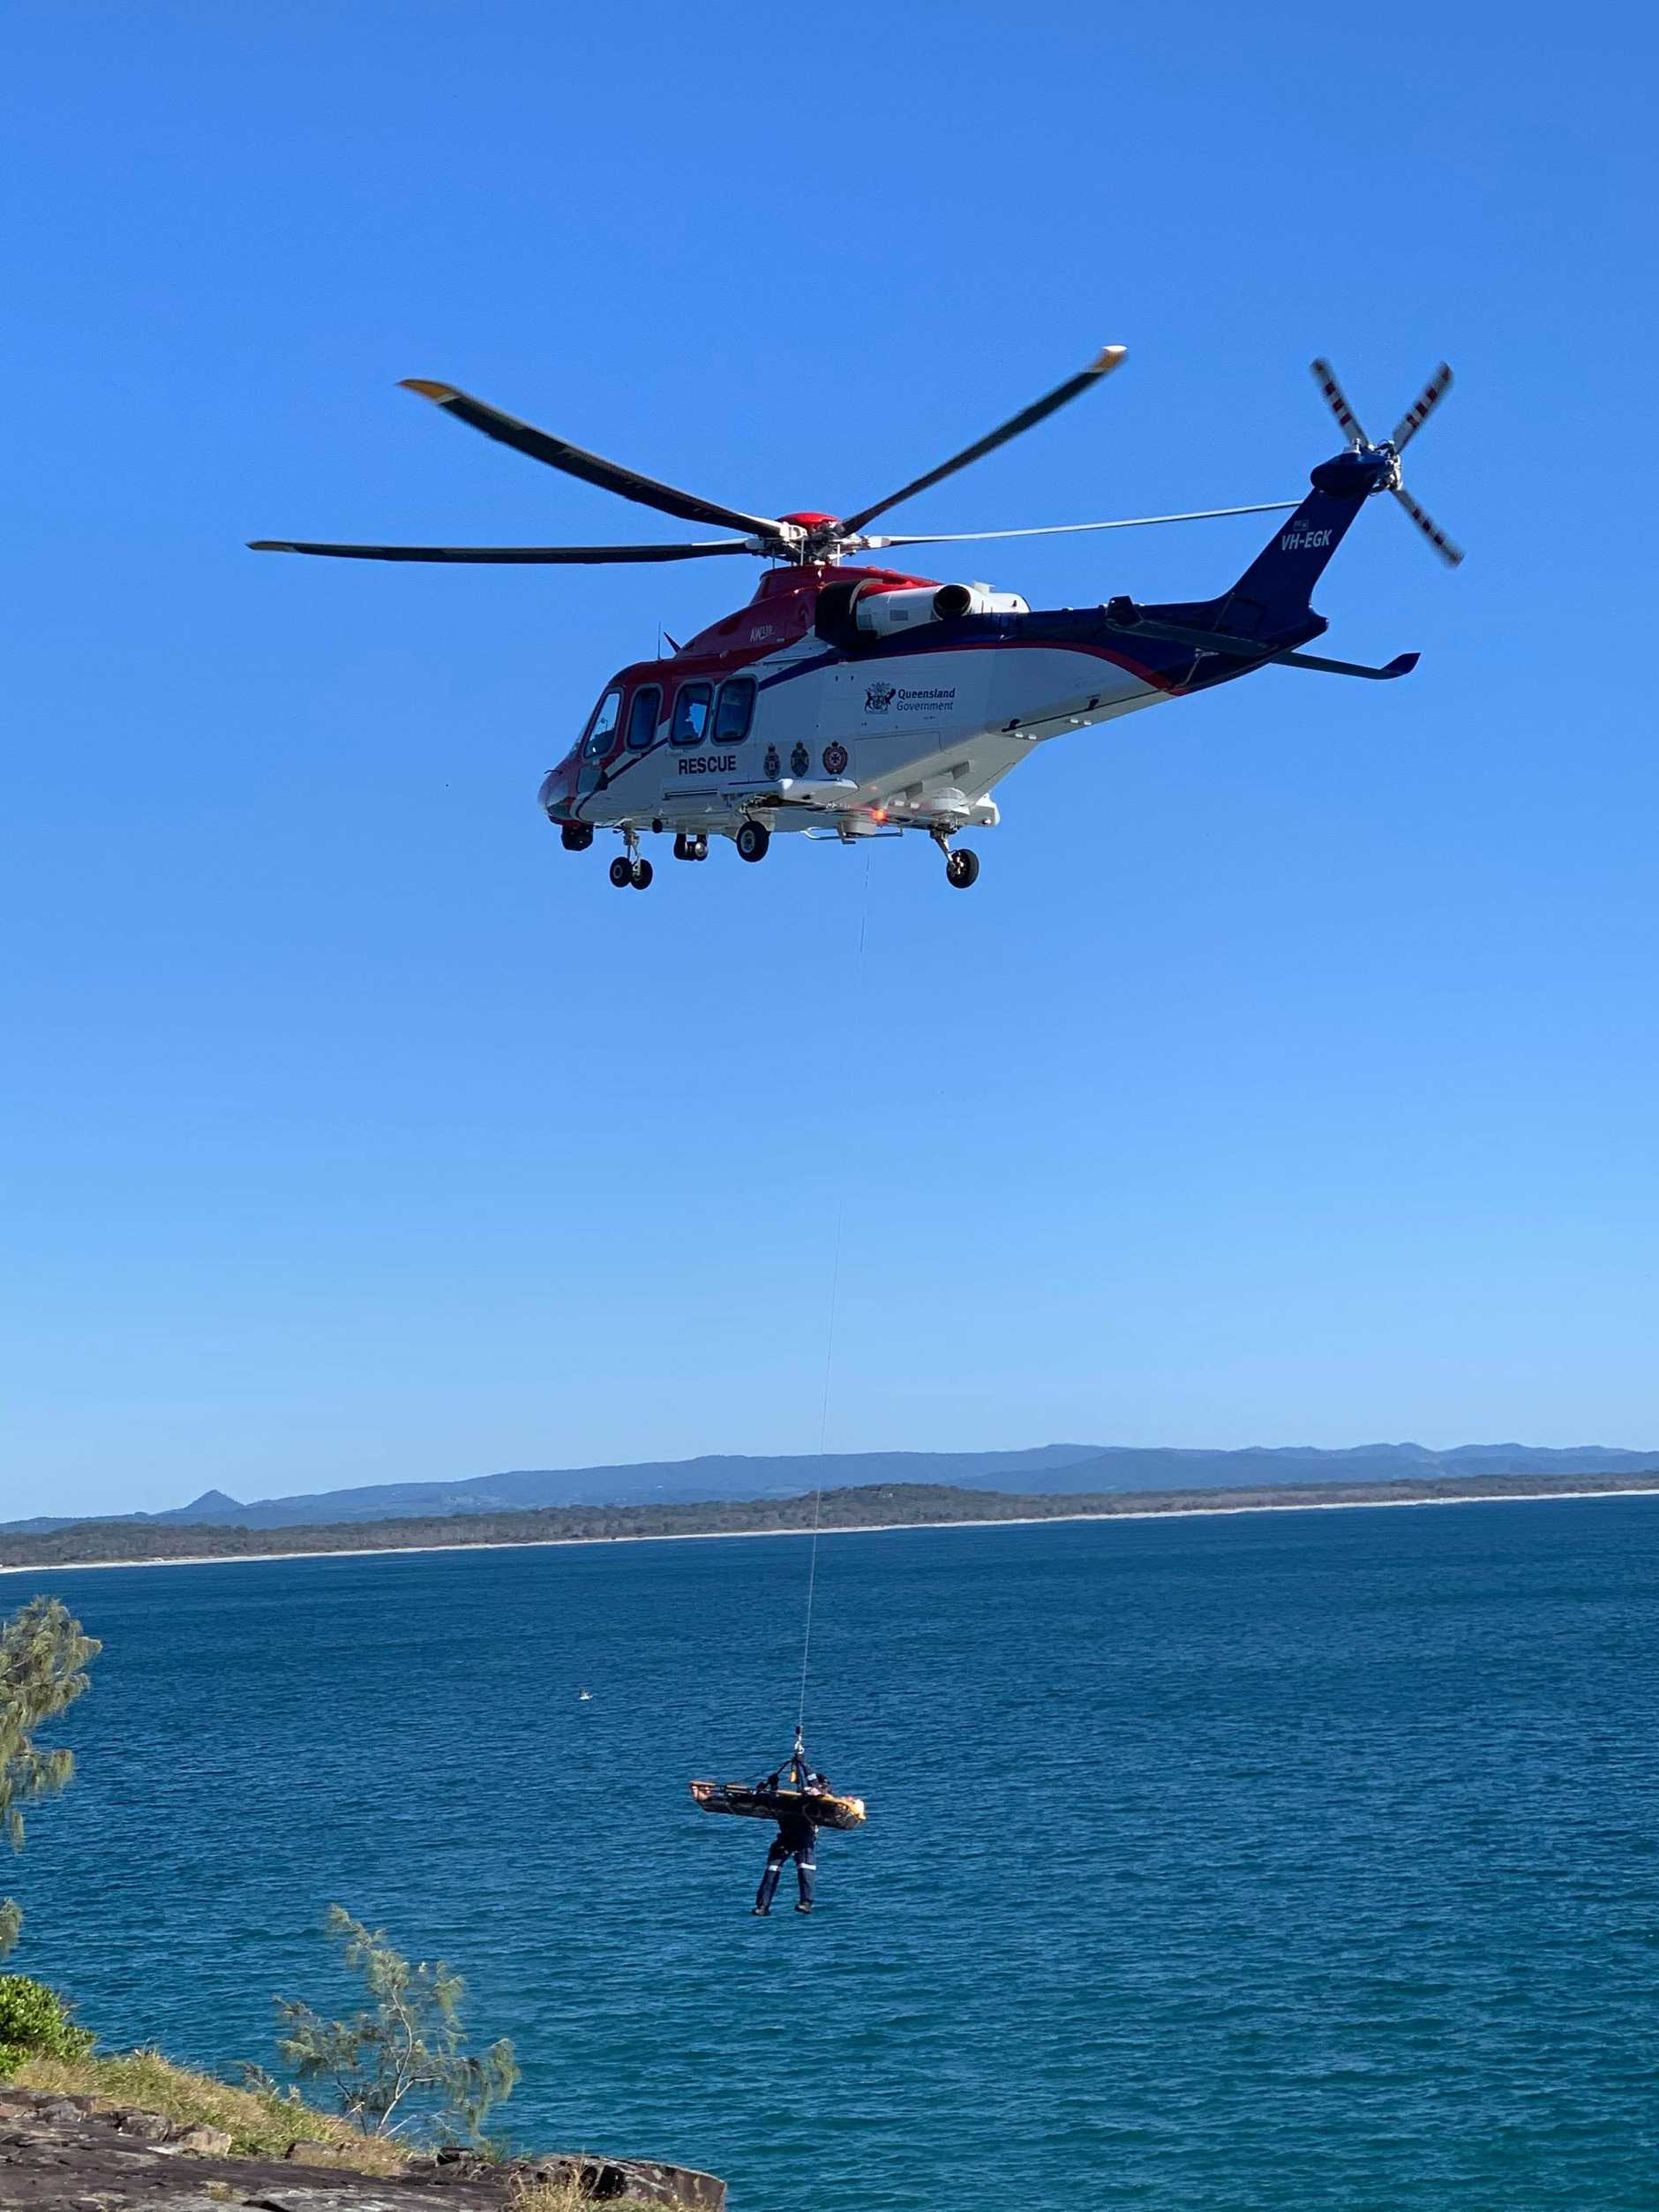 AIR RESCUE: A man has been airlifted to hospital after falling onto rocks at a Noosa beach.